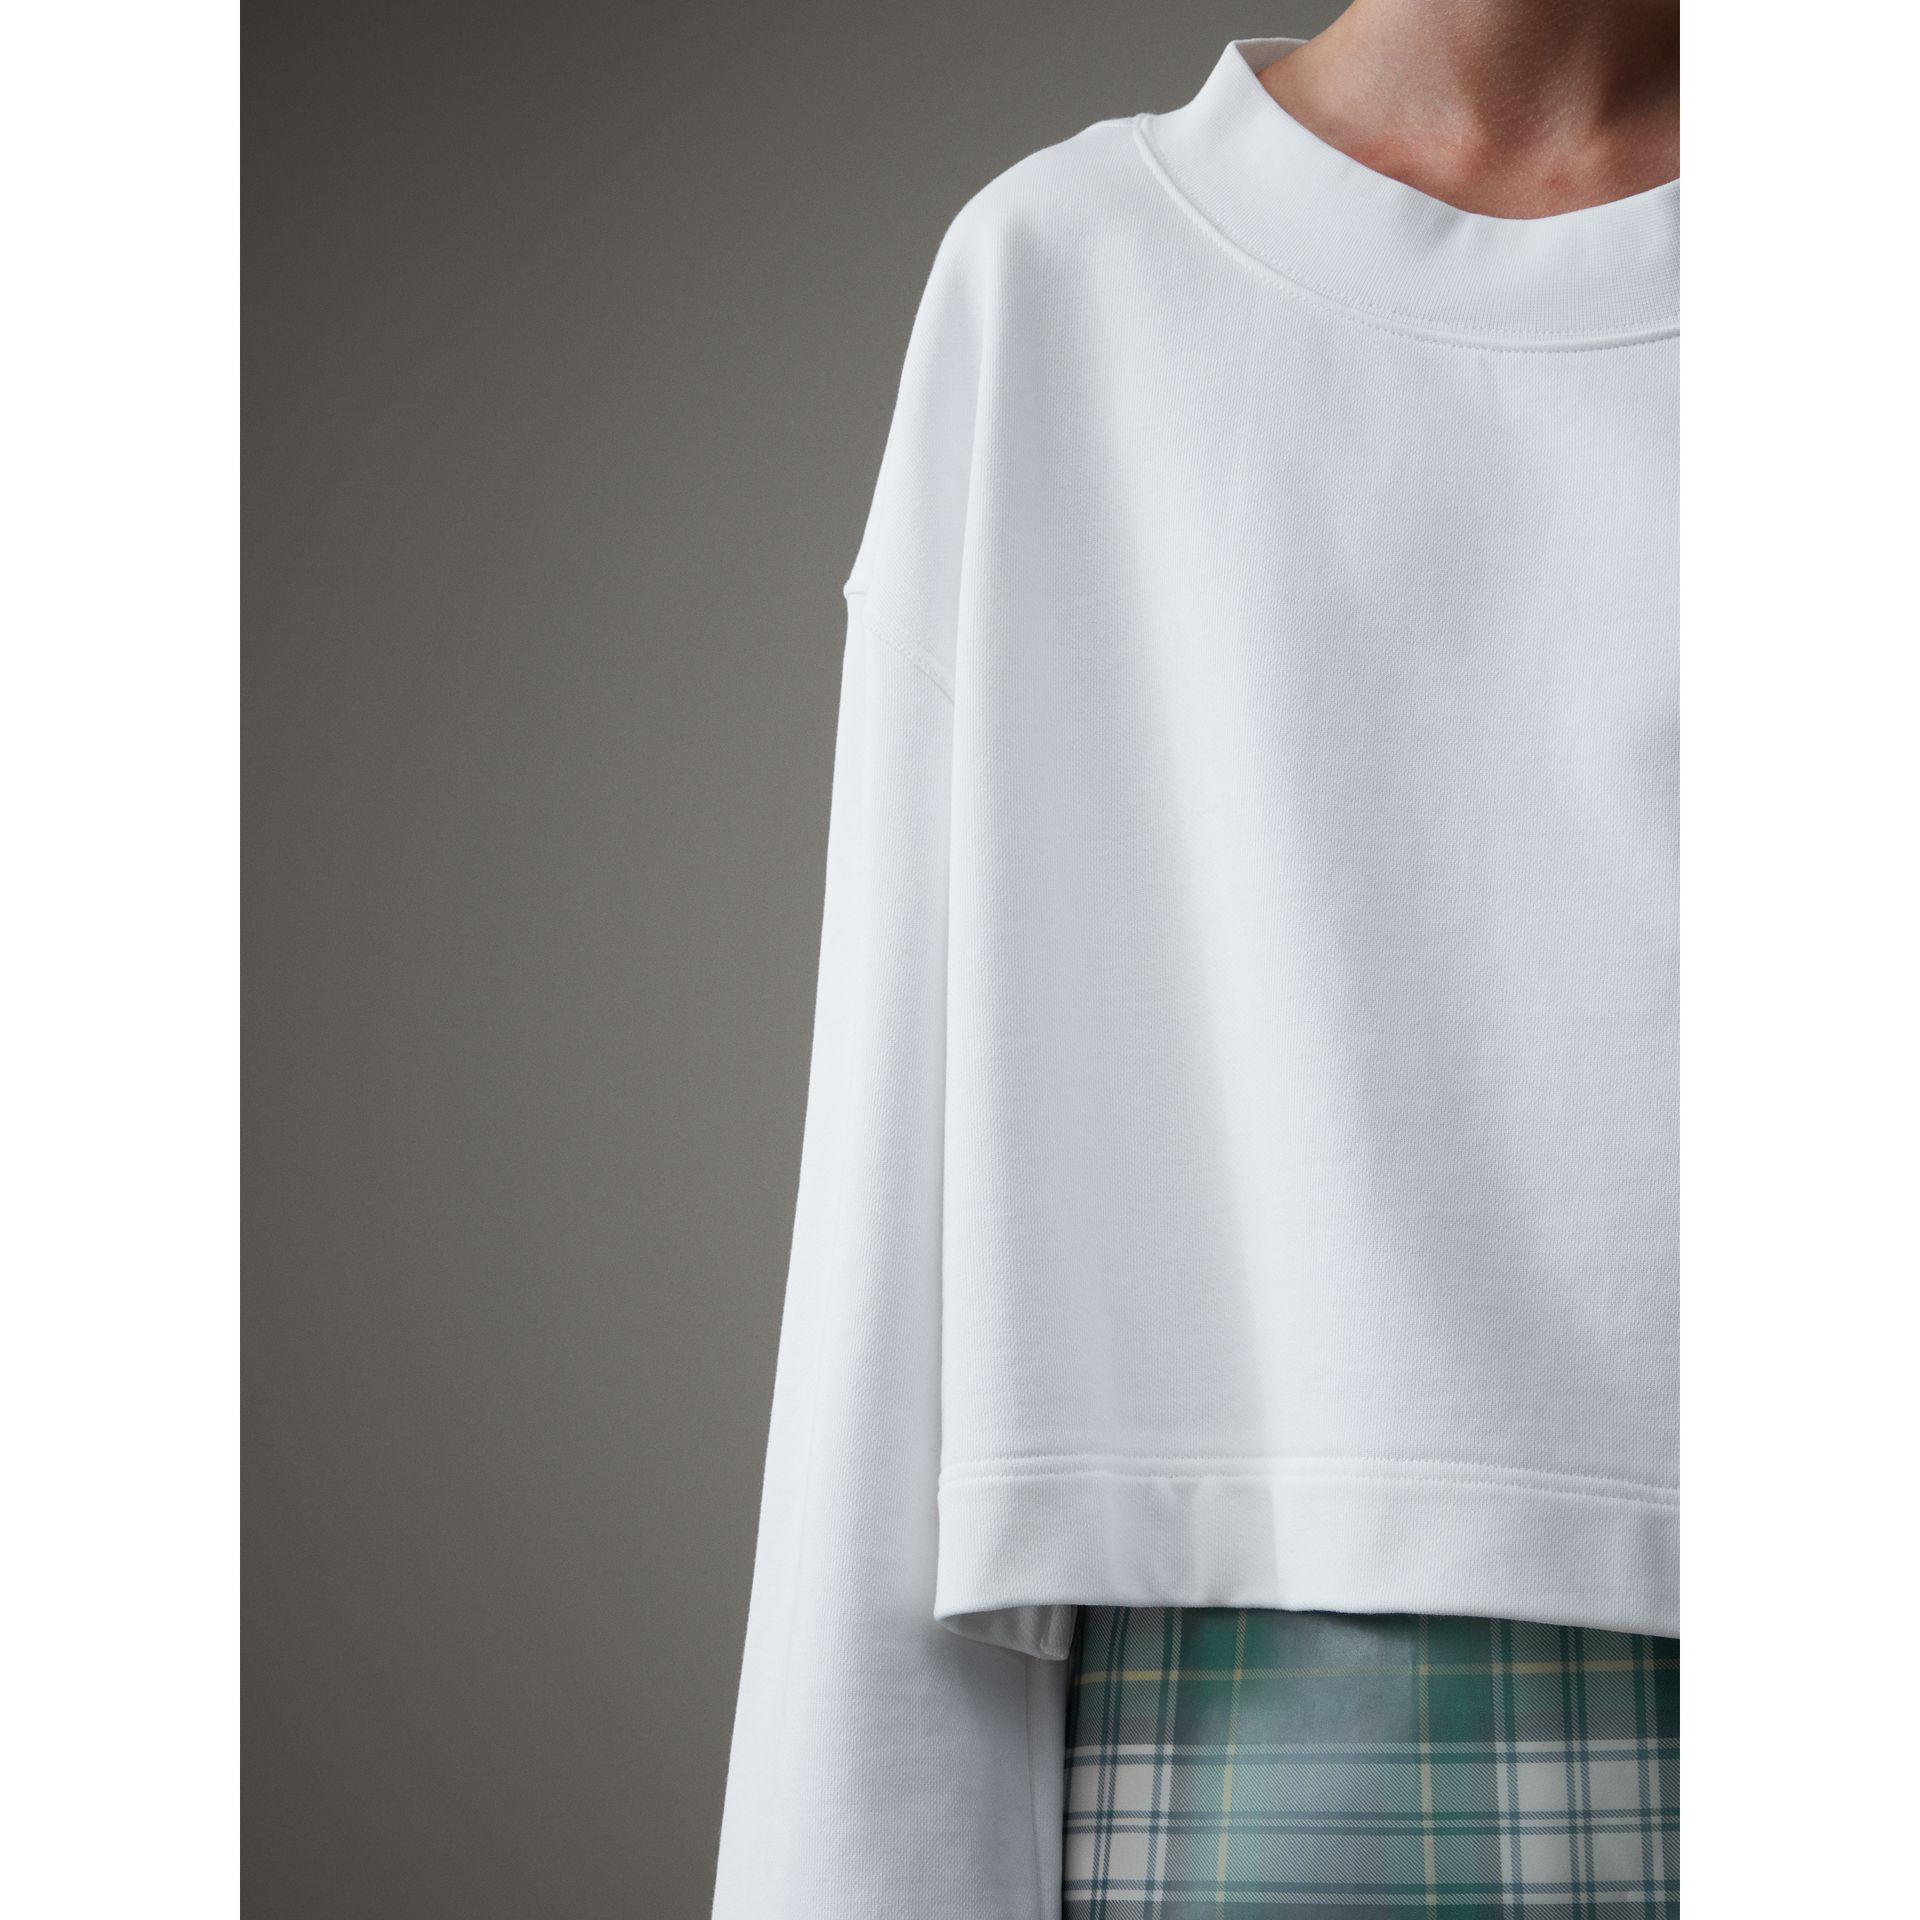 Sweat-shirt court avec broche en cristal (Blanc Optique) - Femme | Burberry - photo de la galerie 1